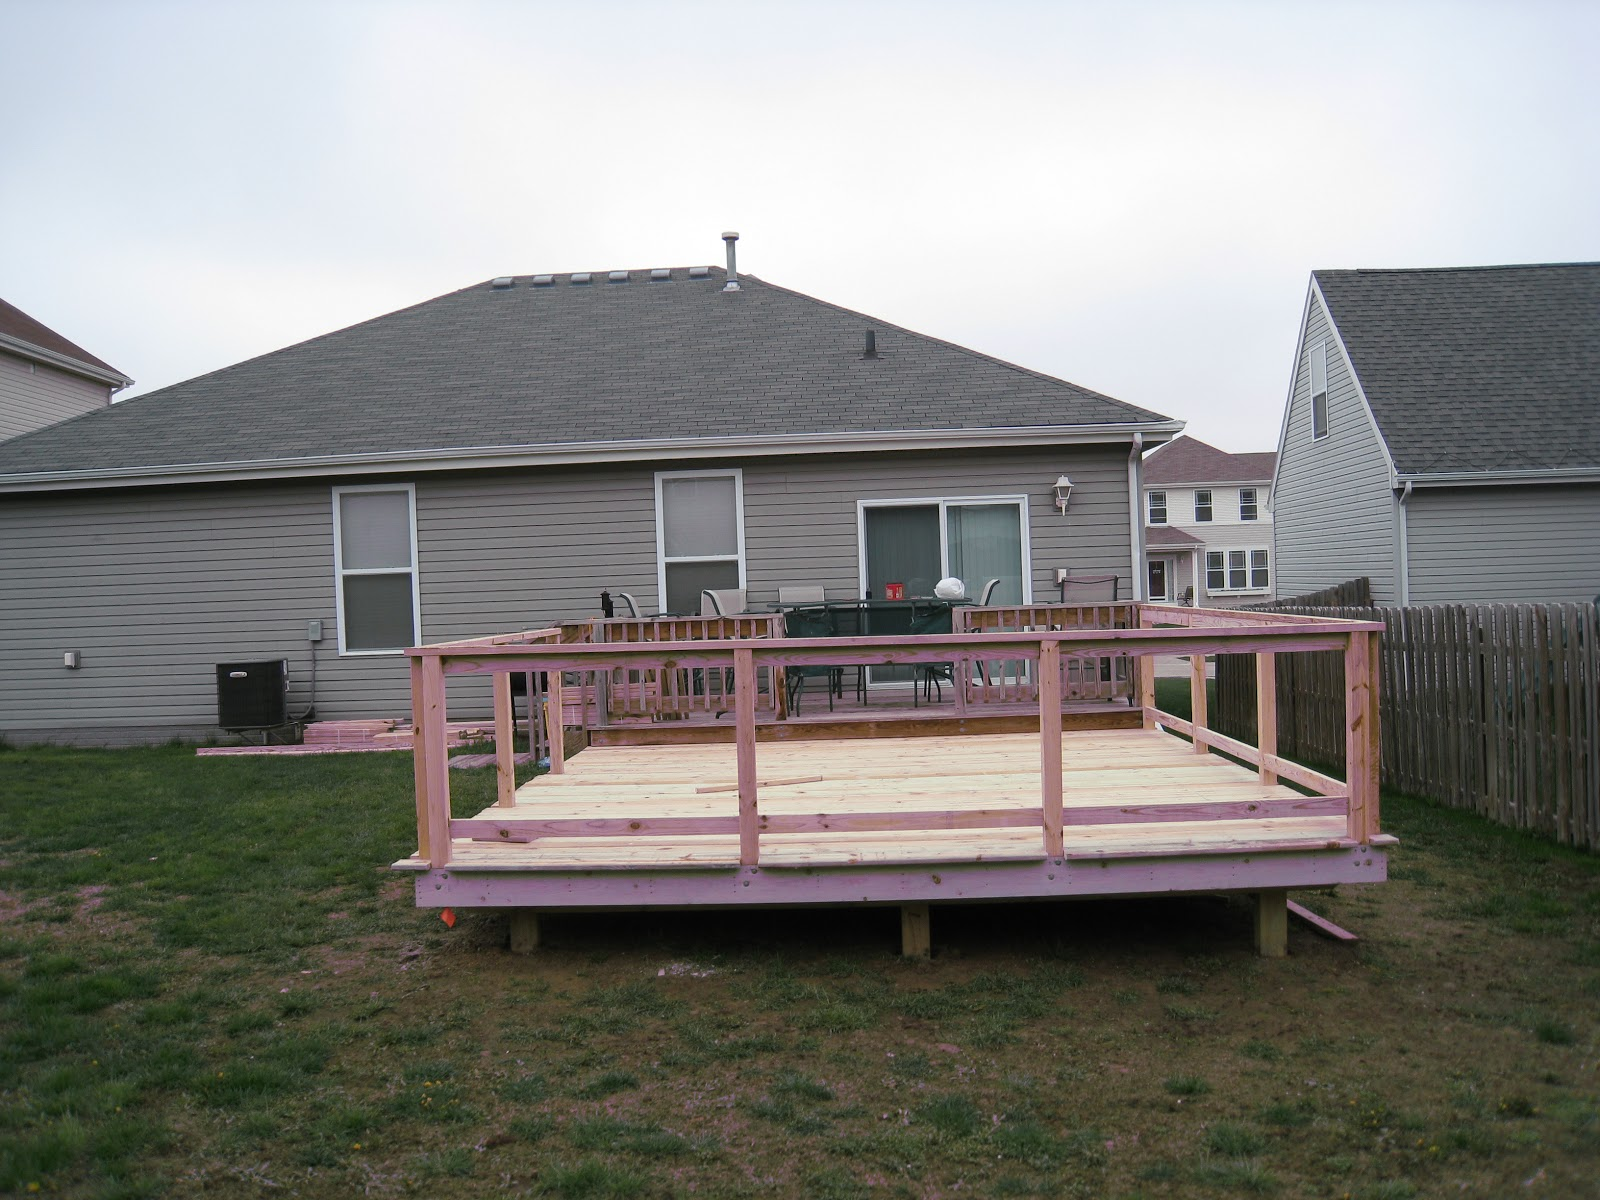 16x16 deck plans pictures to pin on pinterest pinsdaddy for 16 by 16 deck plans